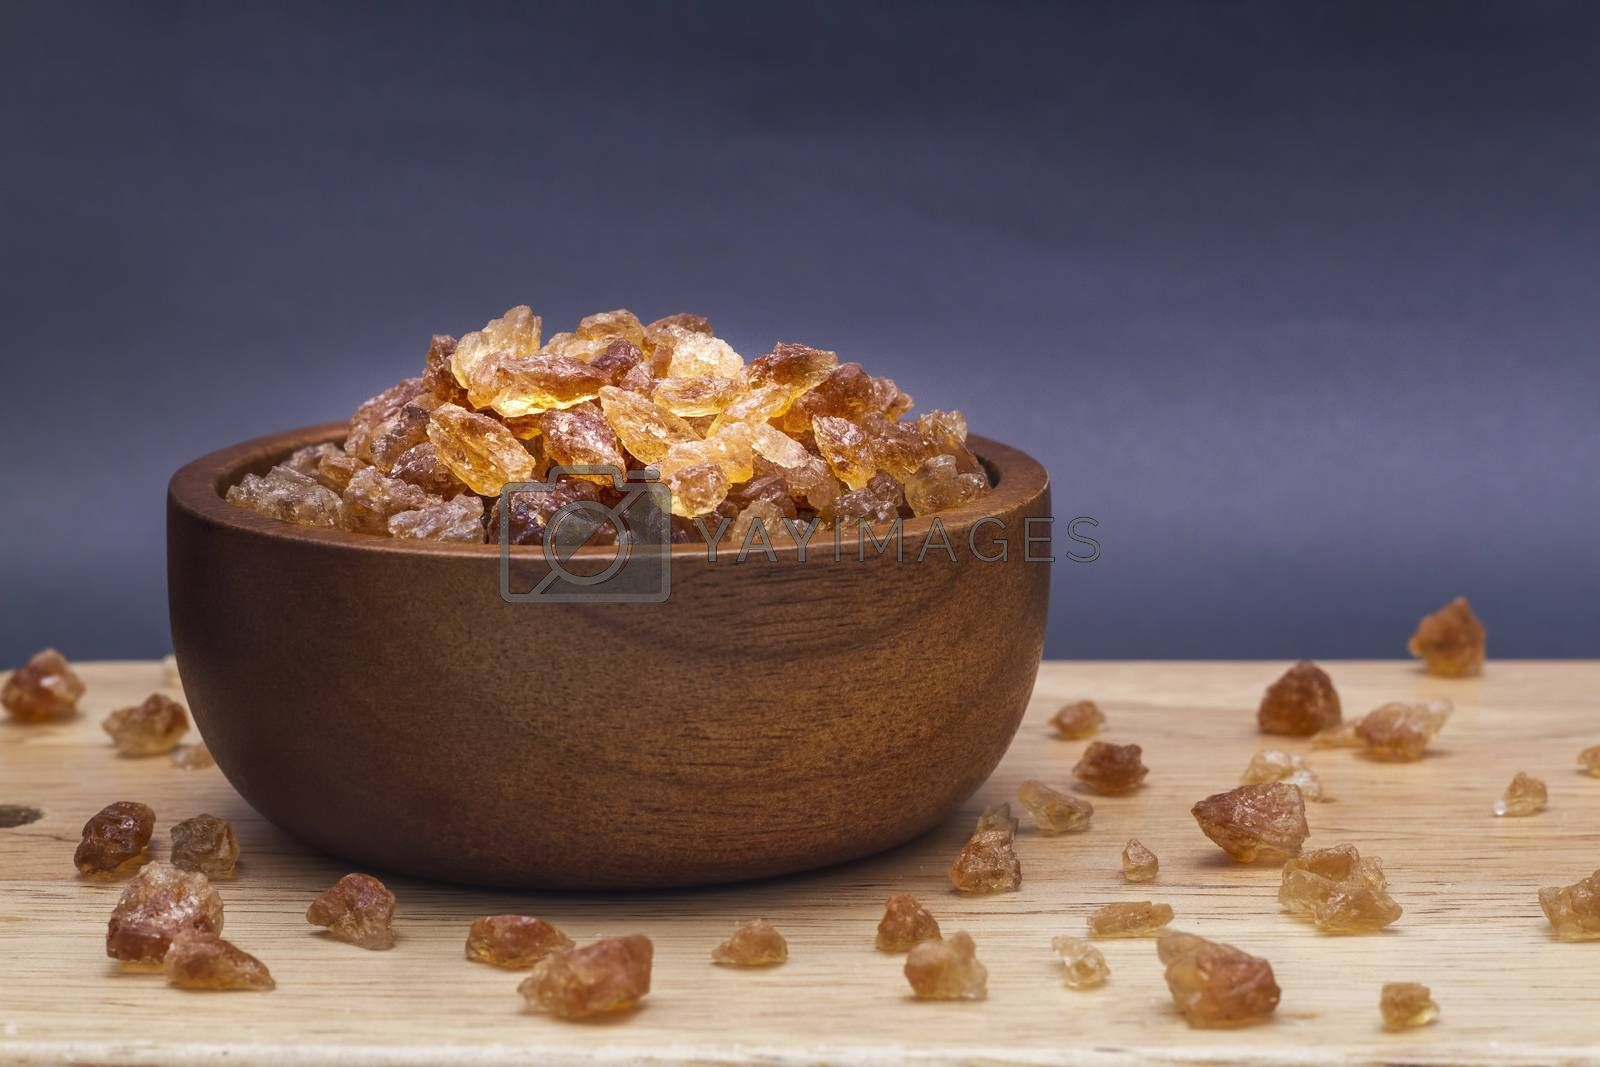 Brown rock sugar in the wooden bowl